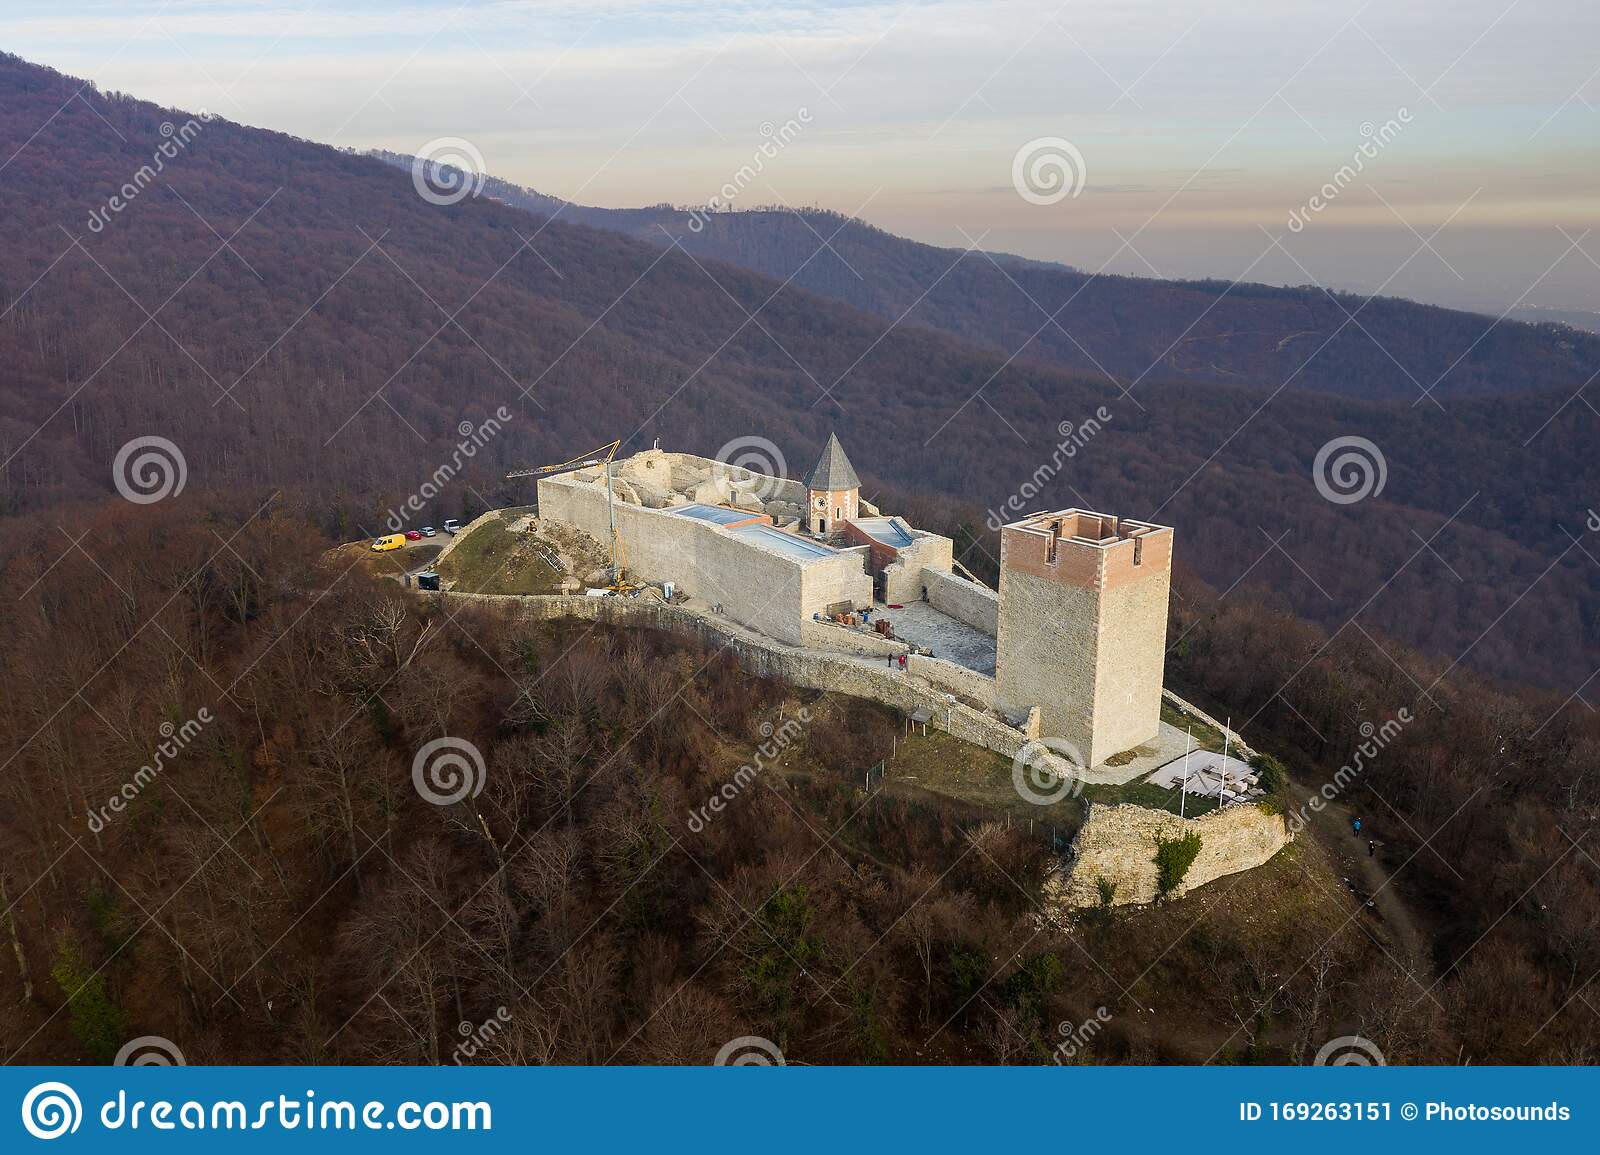 Medvedgrad Castle In Zagreb Croatia Castle Is Under Construction Beautiful Medvednica Mountain In Background Stock Image Image Of City Monument 169263151